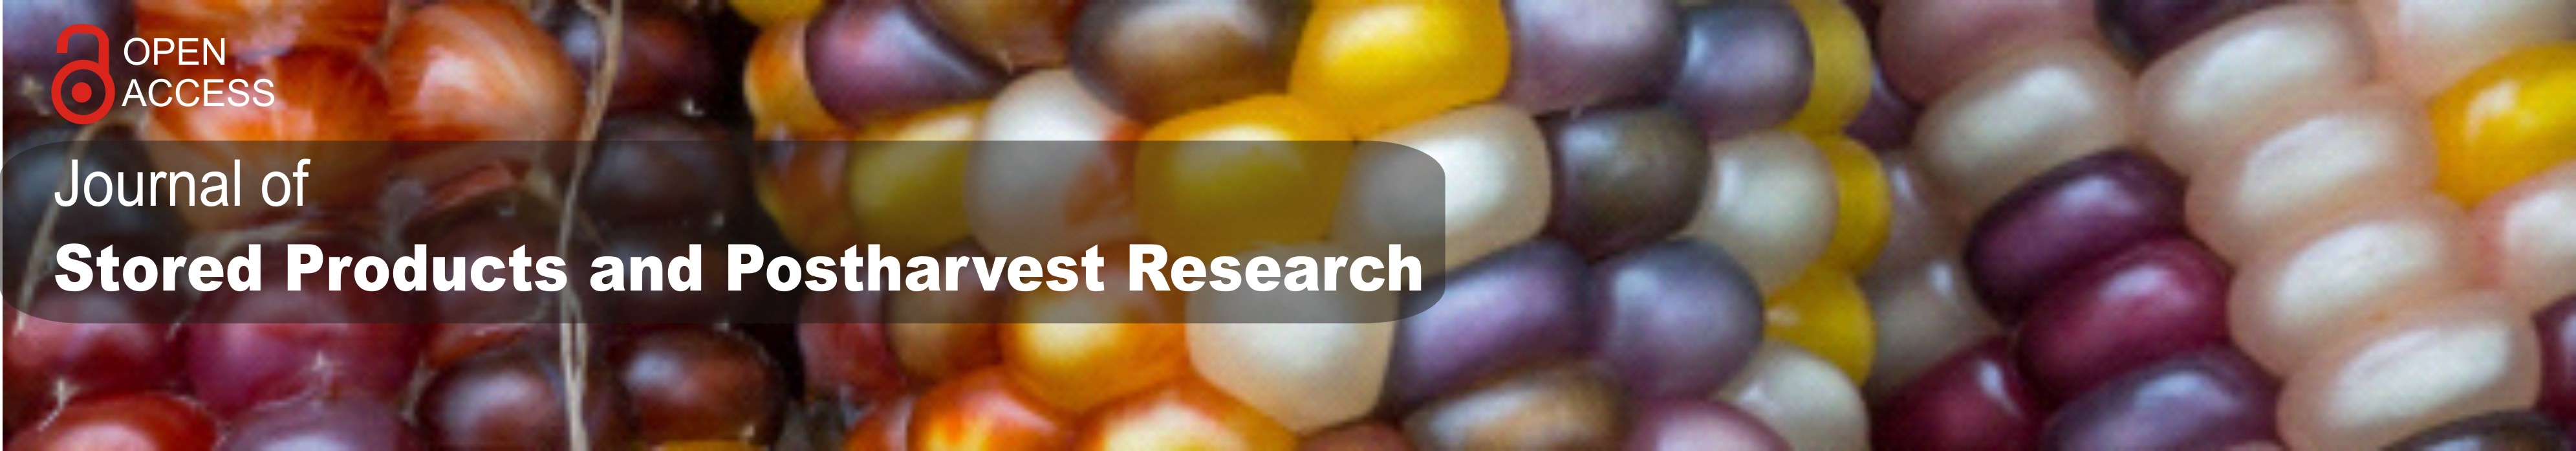 Journal of Stored Products and Postharvest Research